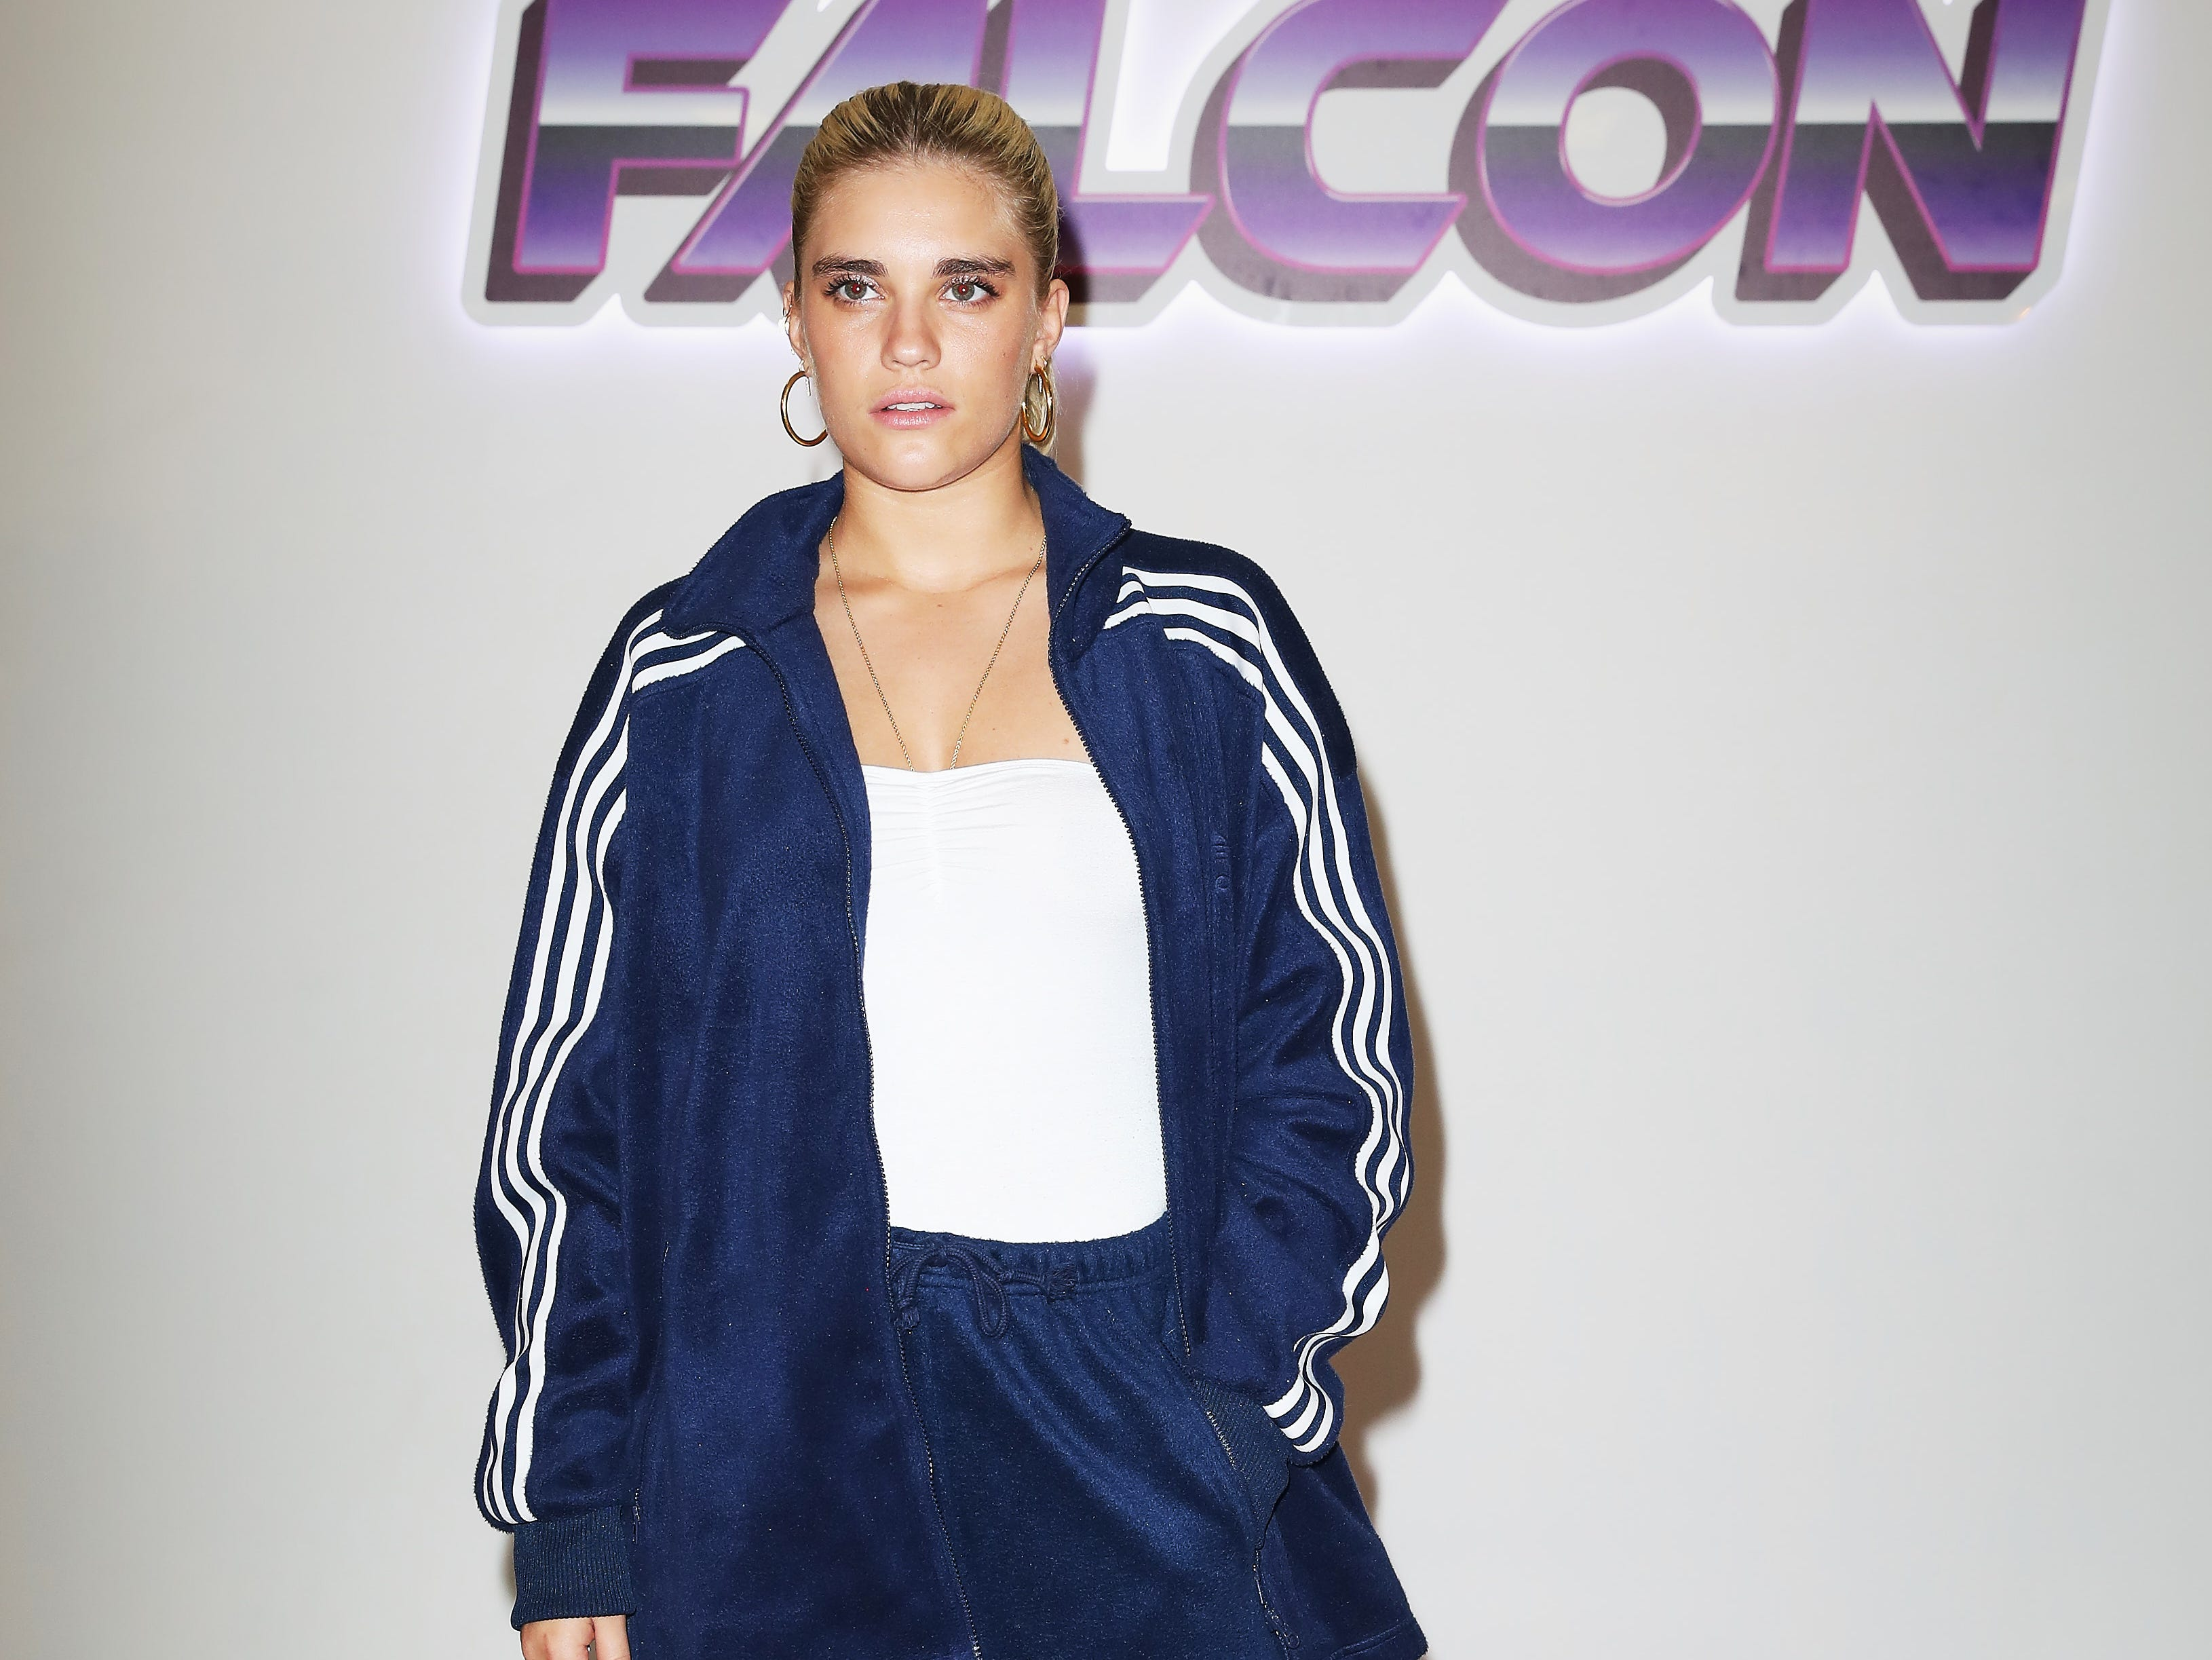 LONDON, ENGLAND - SEPTEMBER 17:  Tigerlily Taylor attends the JD and adidas Falcon fashion show curated by Hailey Baldwin on September 17, 2018 in London, England.